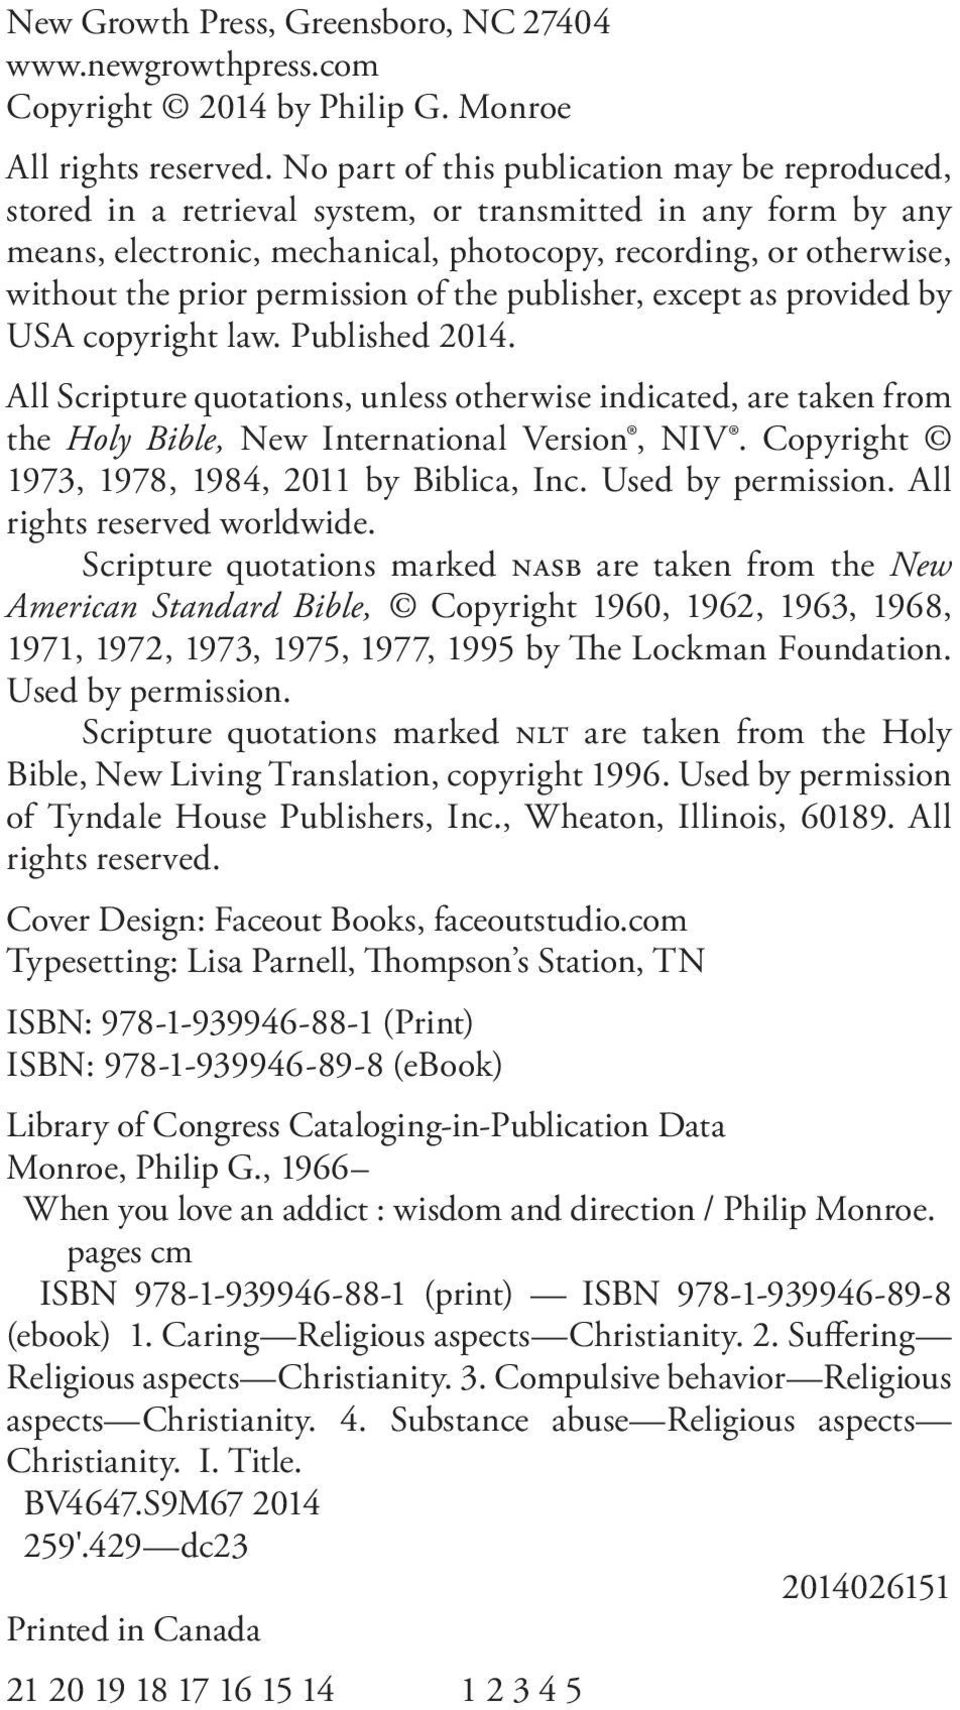 permission of the publisher, except as provided by USA copyright law. Published 2014.